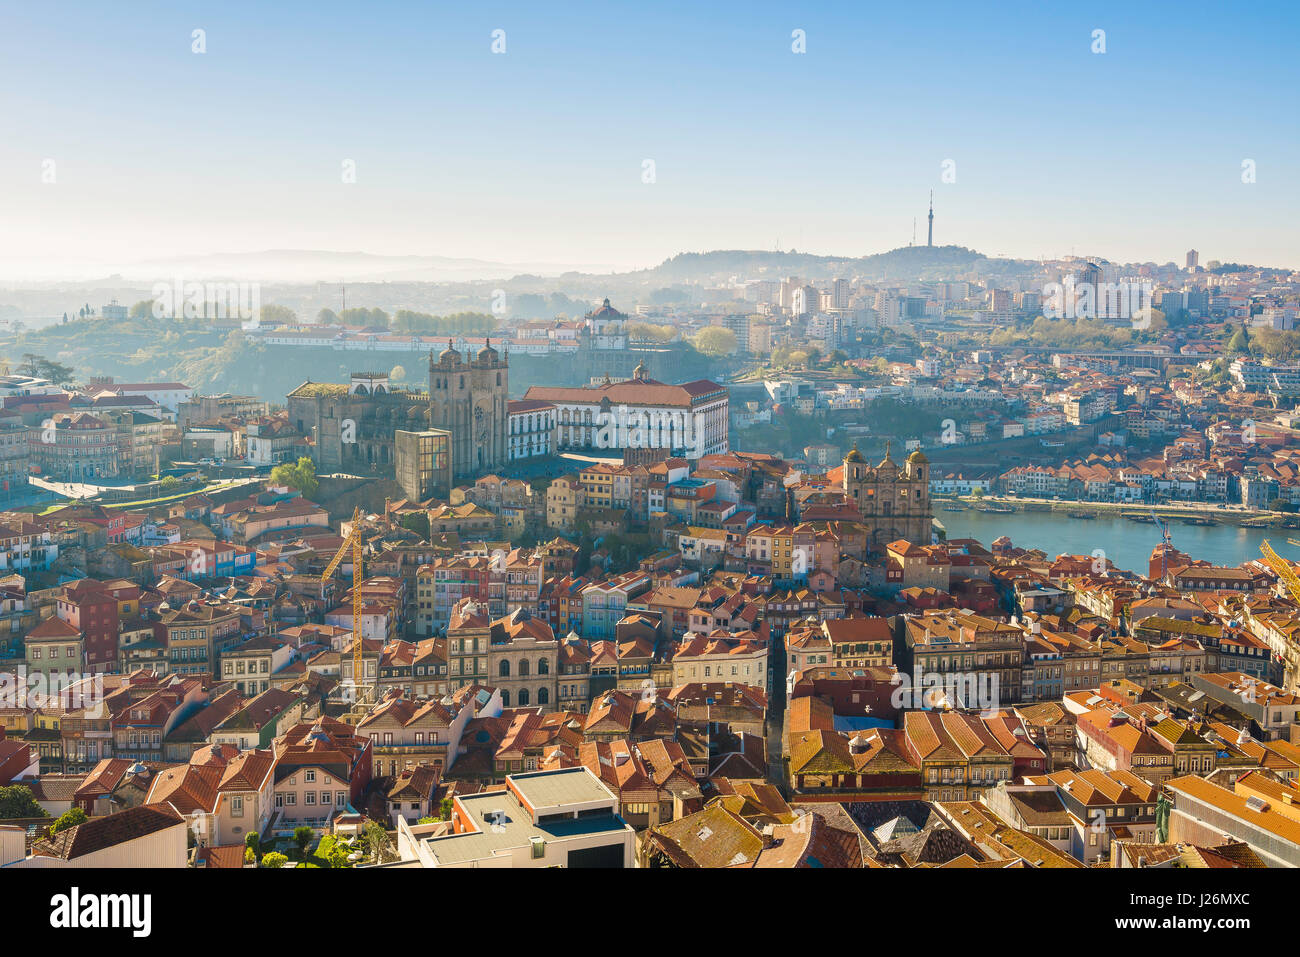 Porto Portugal cityscape, view in summer of the cathedral (Se) and old town area in the center of Porto, Portugal, Stock Photo